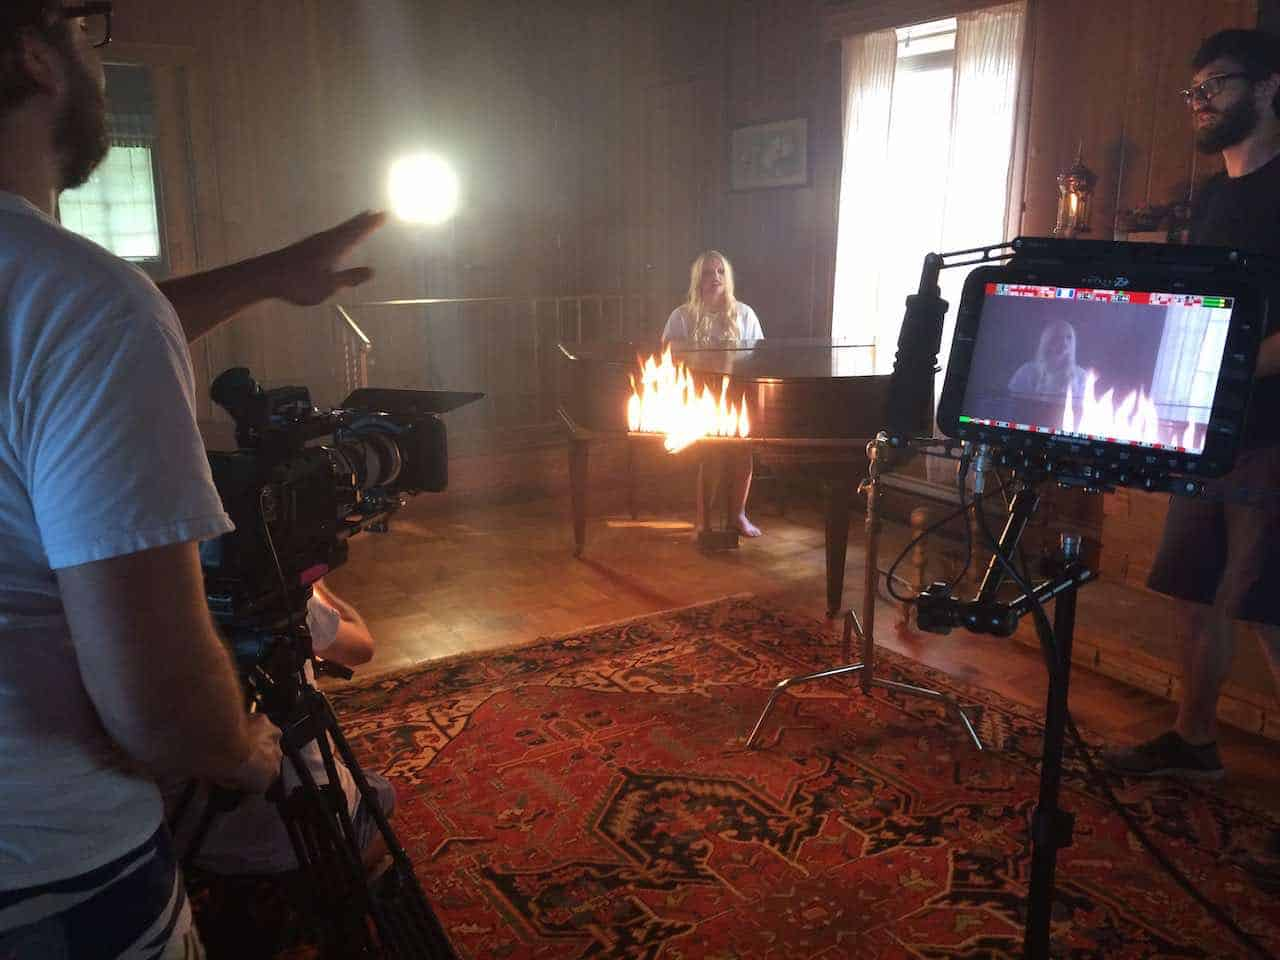 Shot from the music video set in Orlando